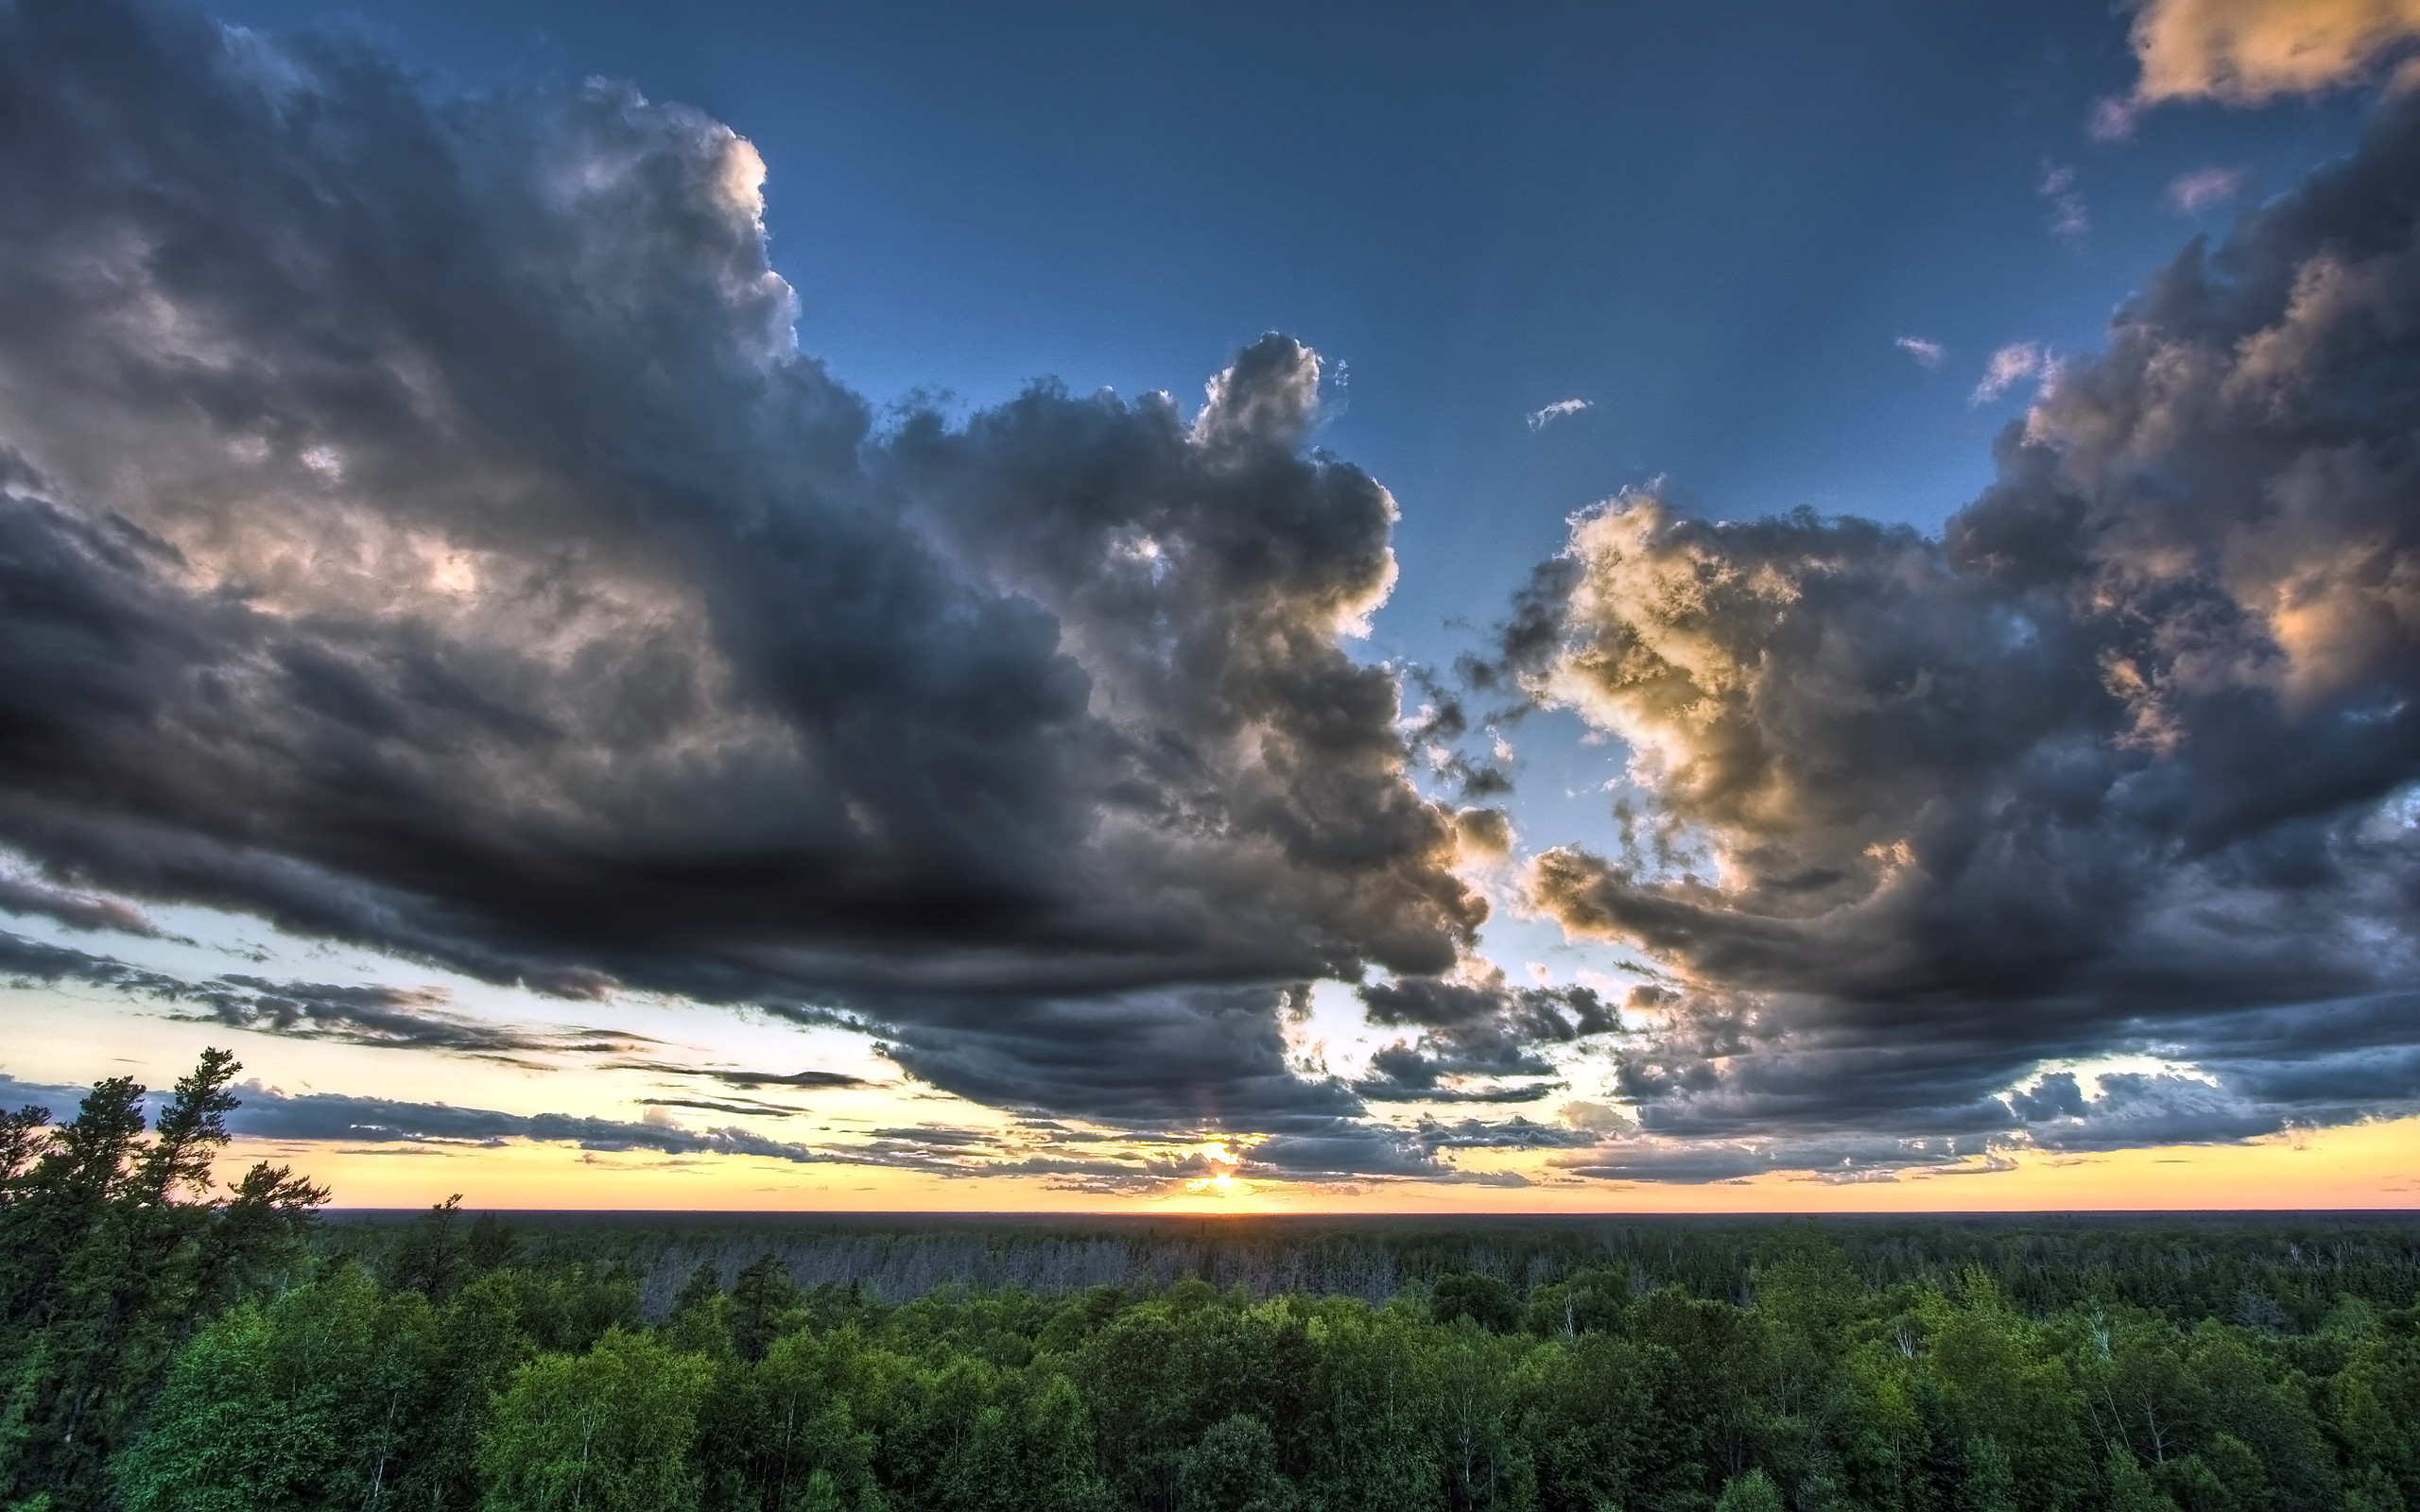 Res: 2560x1600, HD Wallpaper | Background Image ID:355538.  Earth Cloud